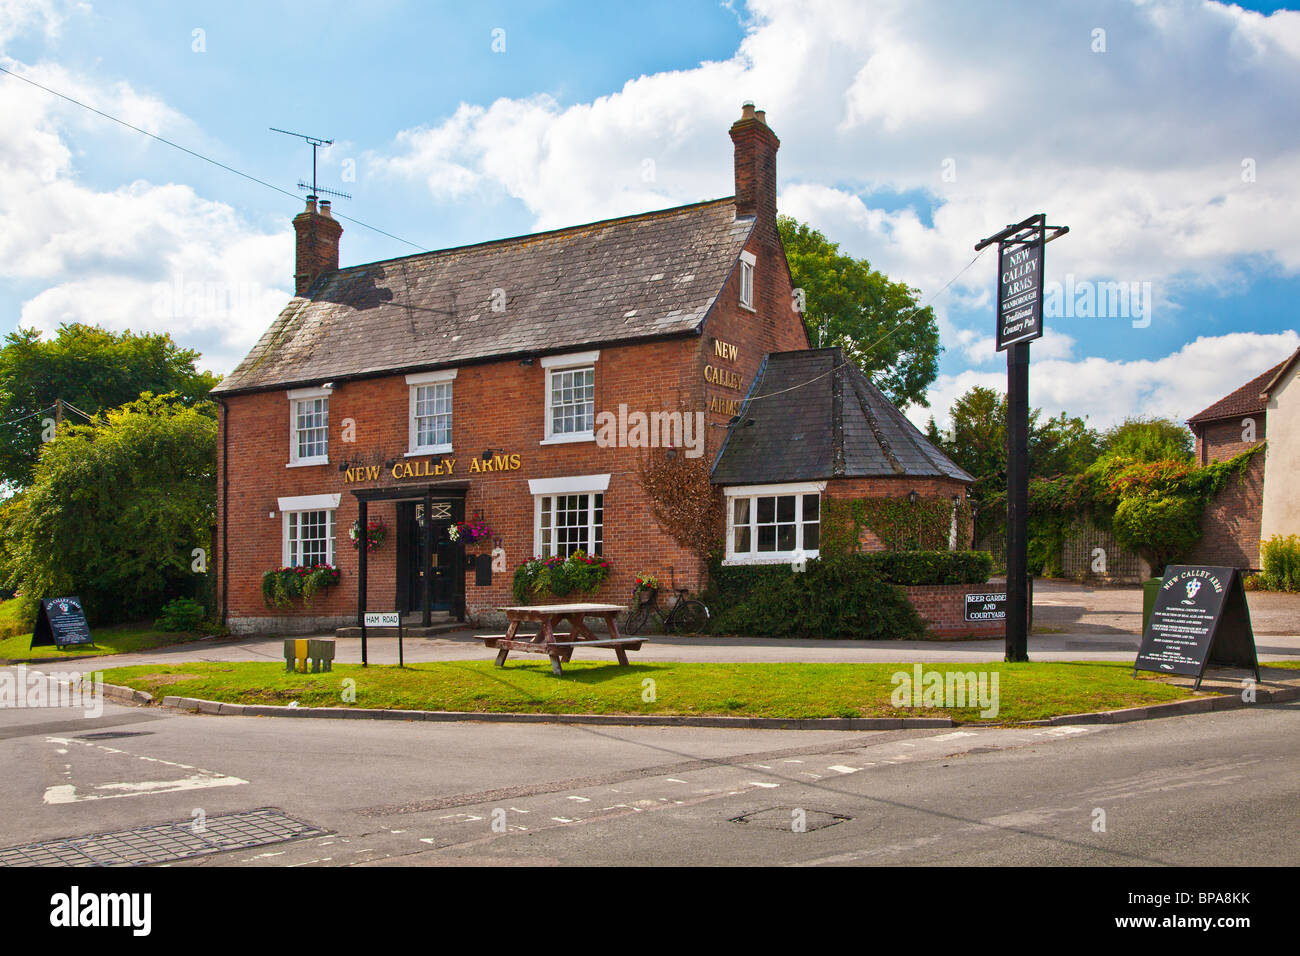 the new calley arms pub a typical village inn in wanborough stock photo royalty free image. Black Bedroom Furniture Sets. Home Design Ideas